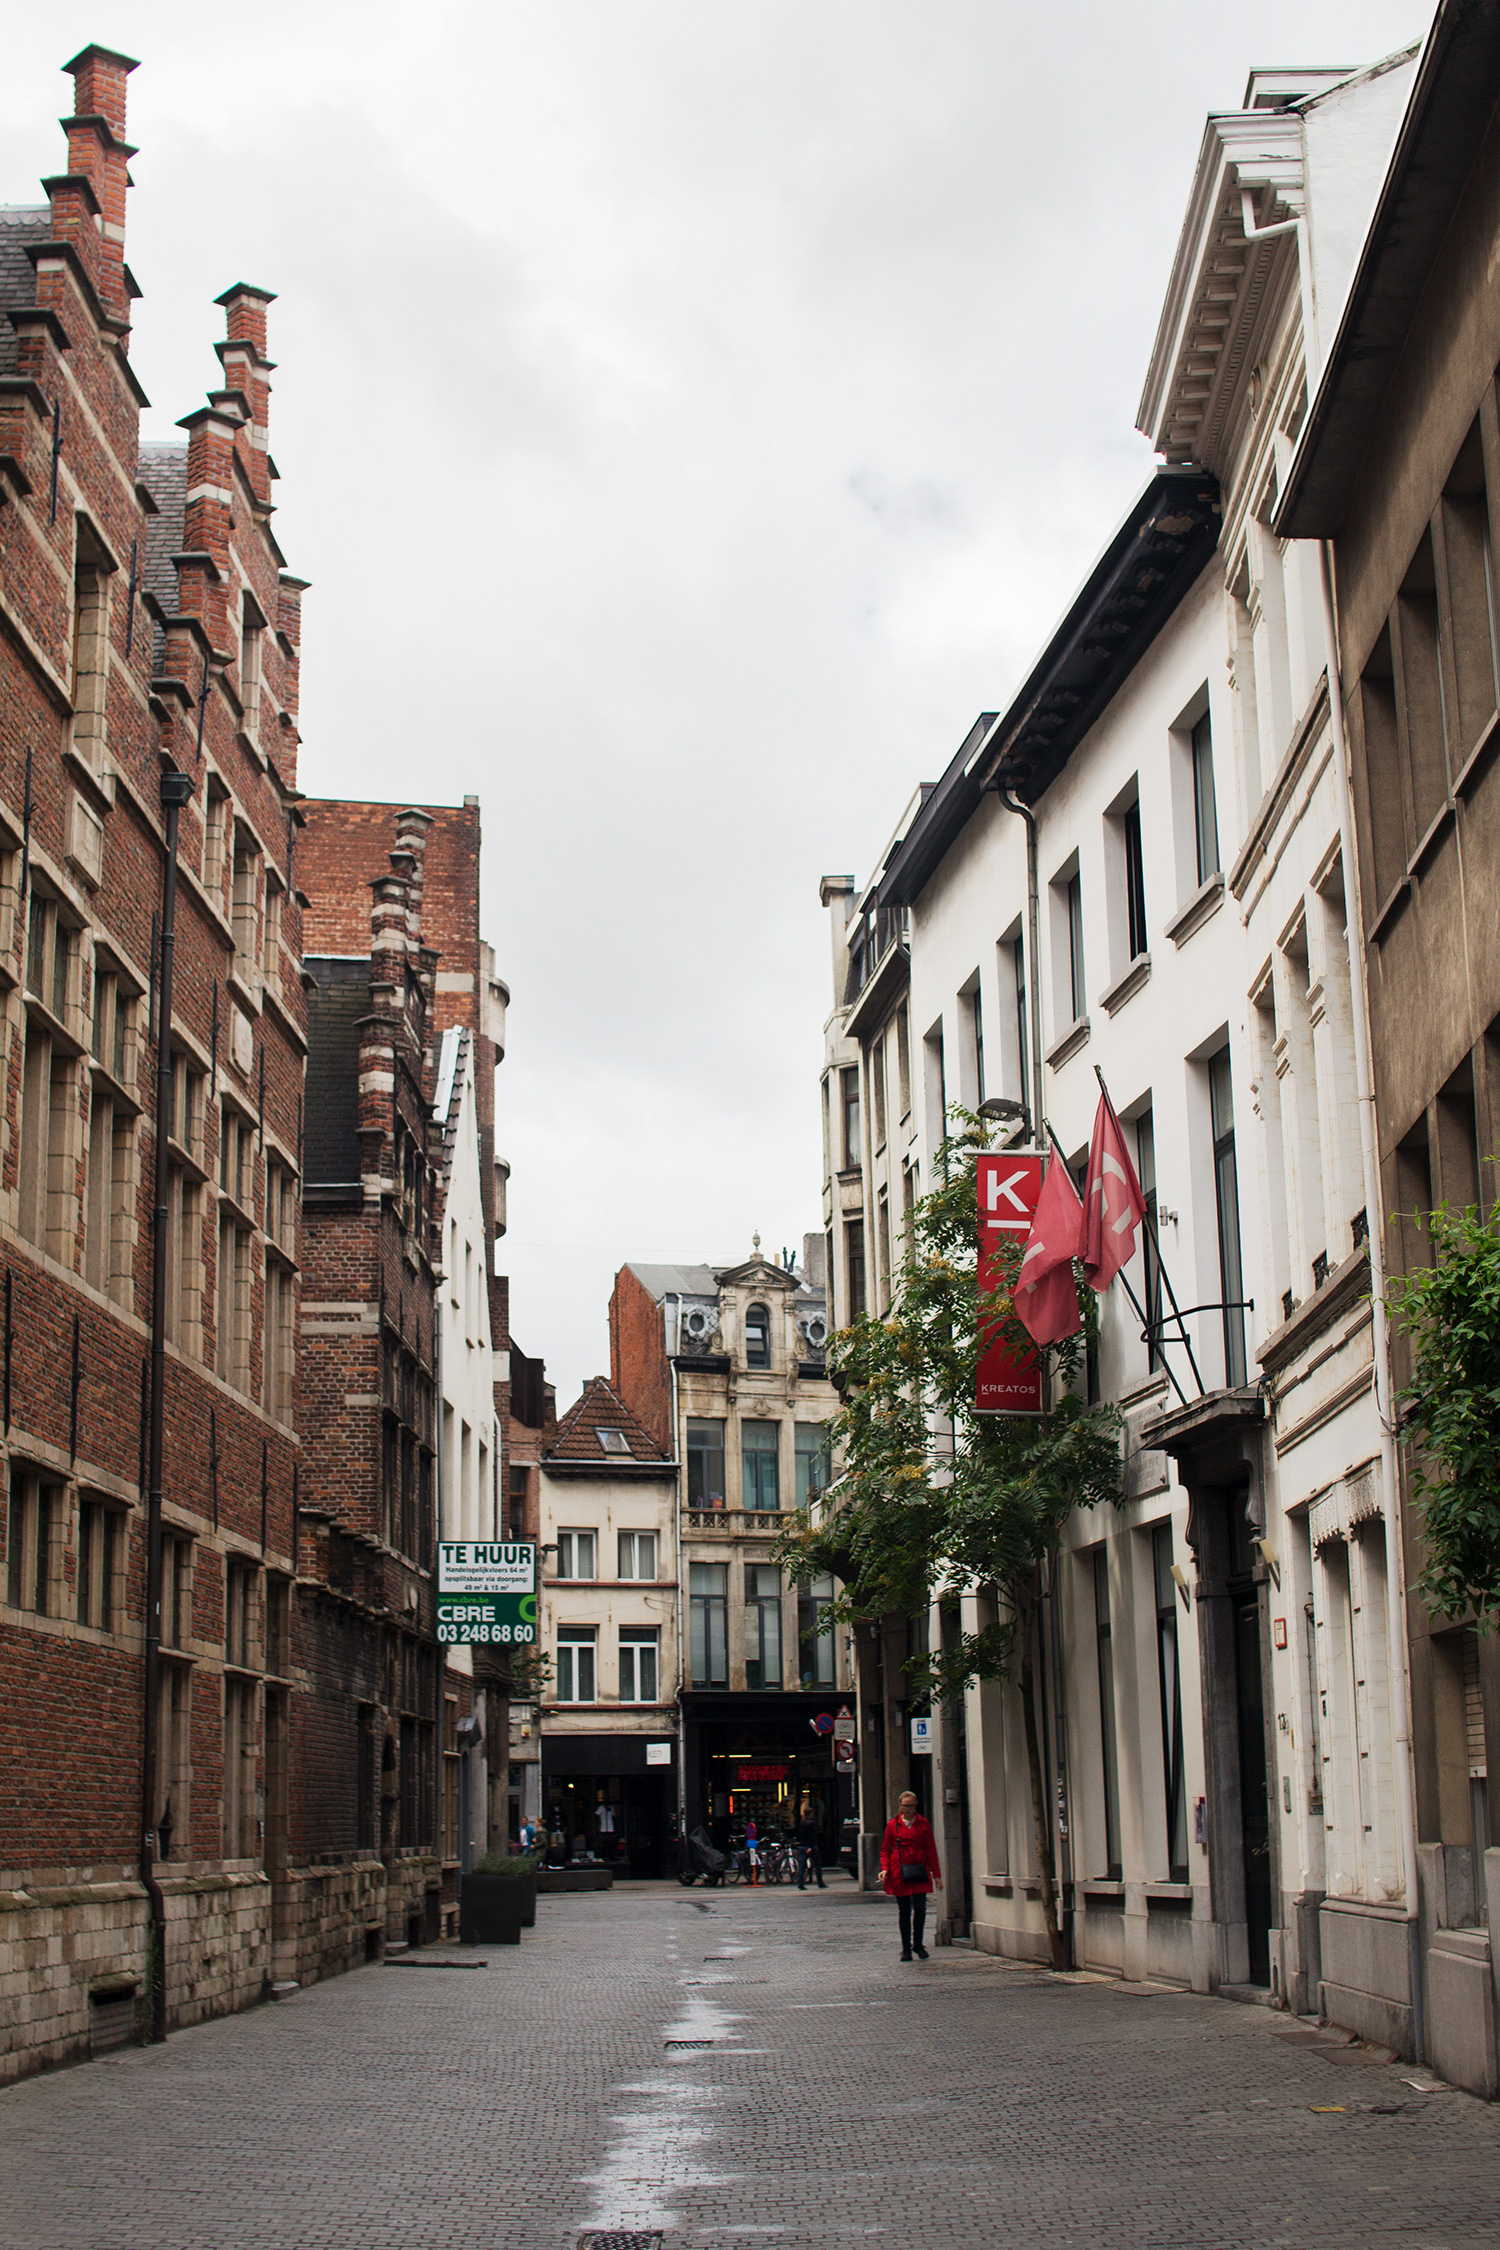 Alleyway in Antwerp